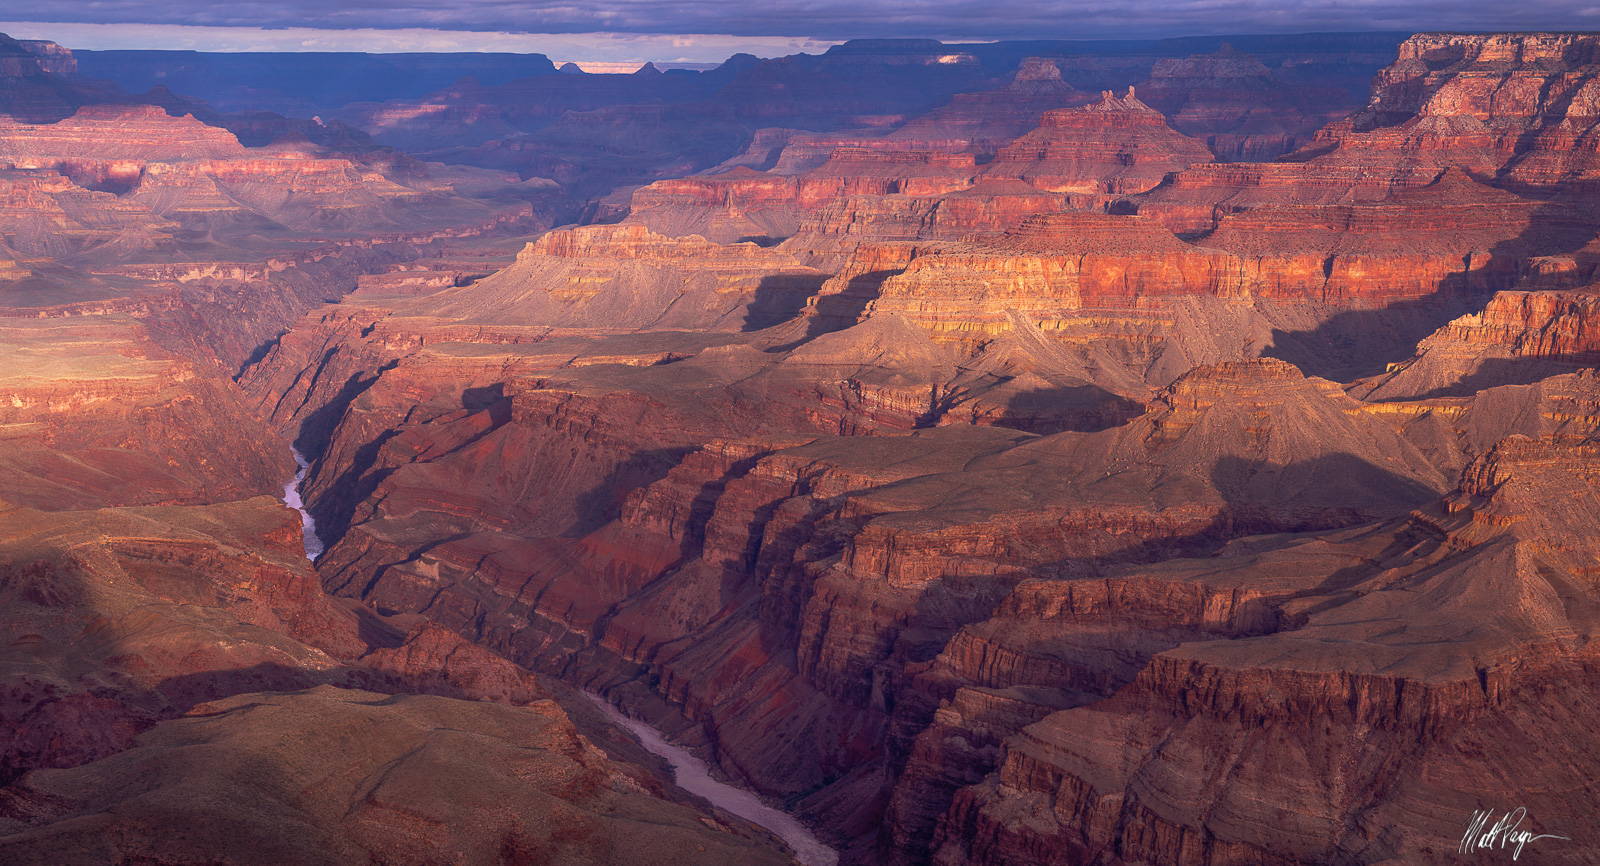 Early light illuminates a variety of layers in the Grand Canyon. The Colorado River carves out a line below - the roar of the...